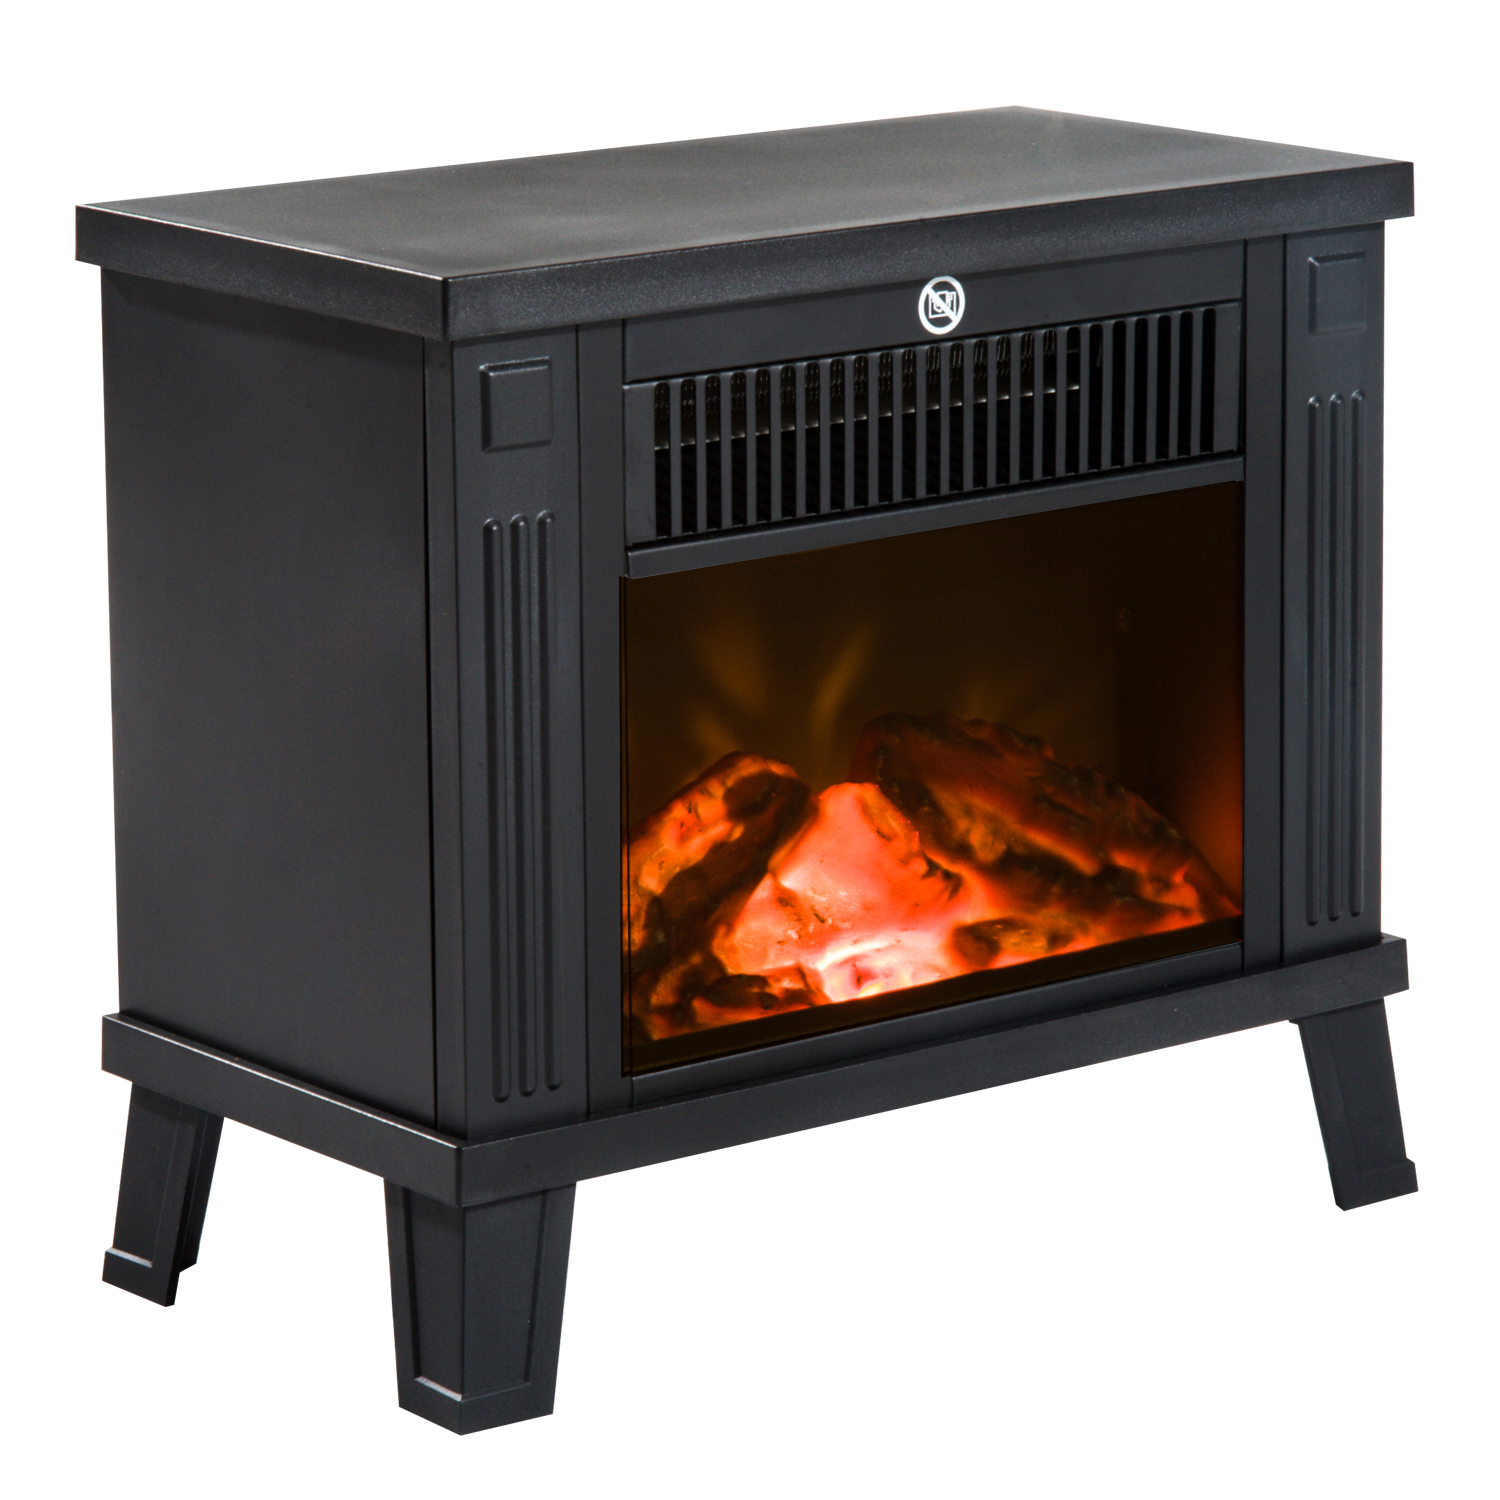 Image of £45.99 HOMCOM Electric Heater W/ Thermostat Control / 1.2KW Freestanding Fireplace Fire Wood Log Burning Effect Flame Stove with Black 600W/1200W 820-079 5056029801390